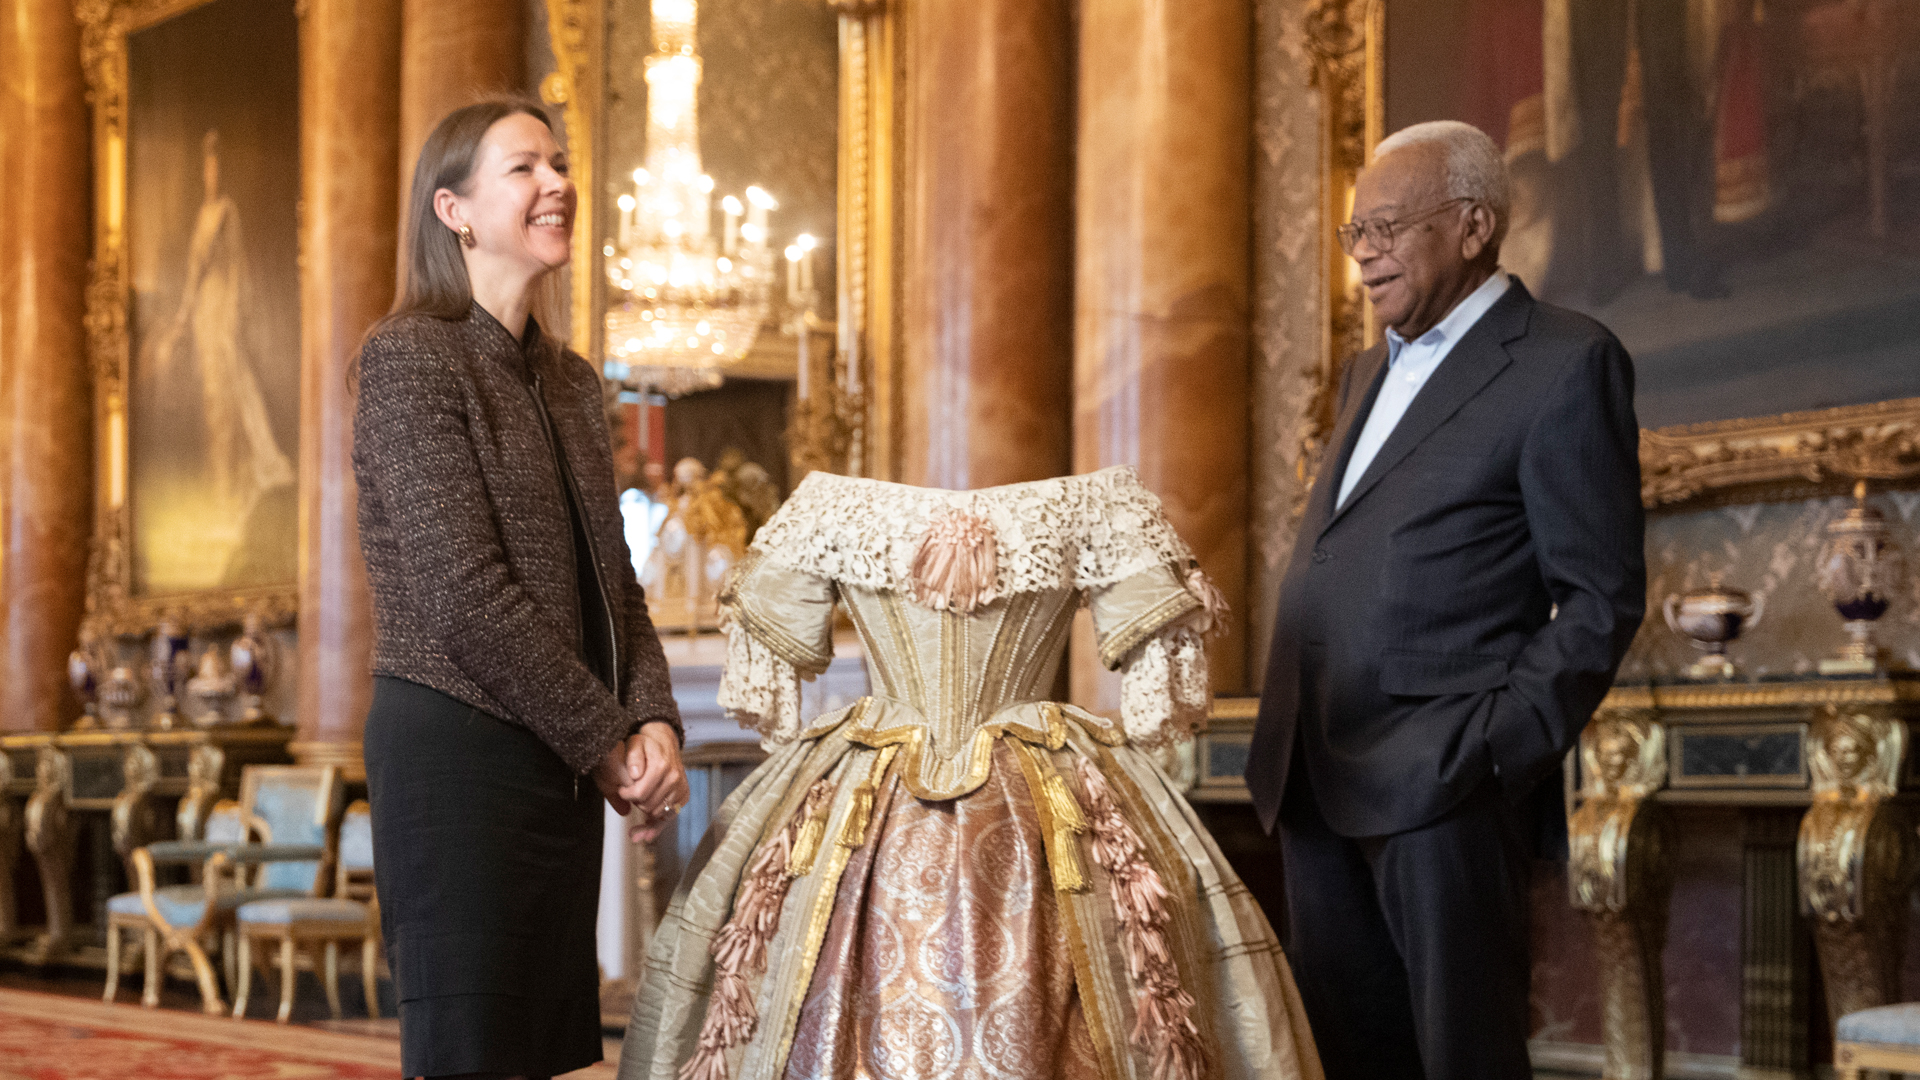 Trevor-McDonald-and-Queen-Victoria's-Dress.jpg